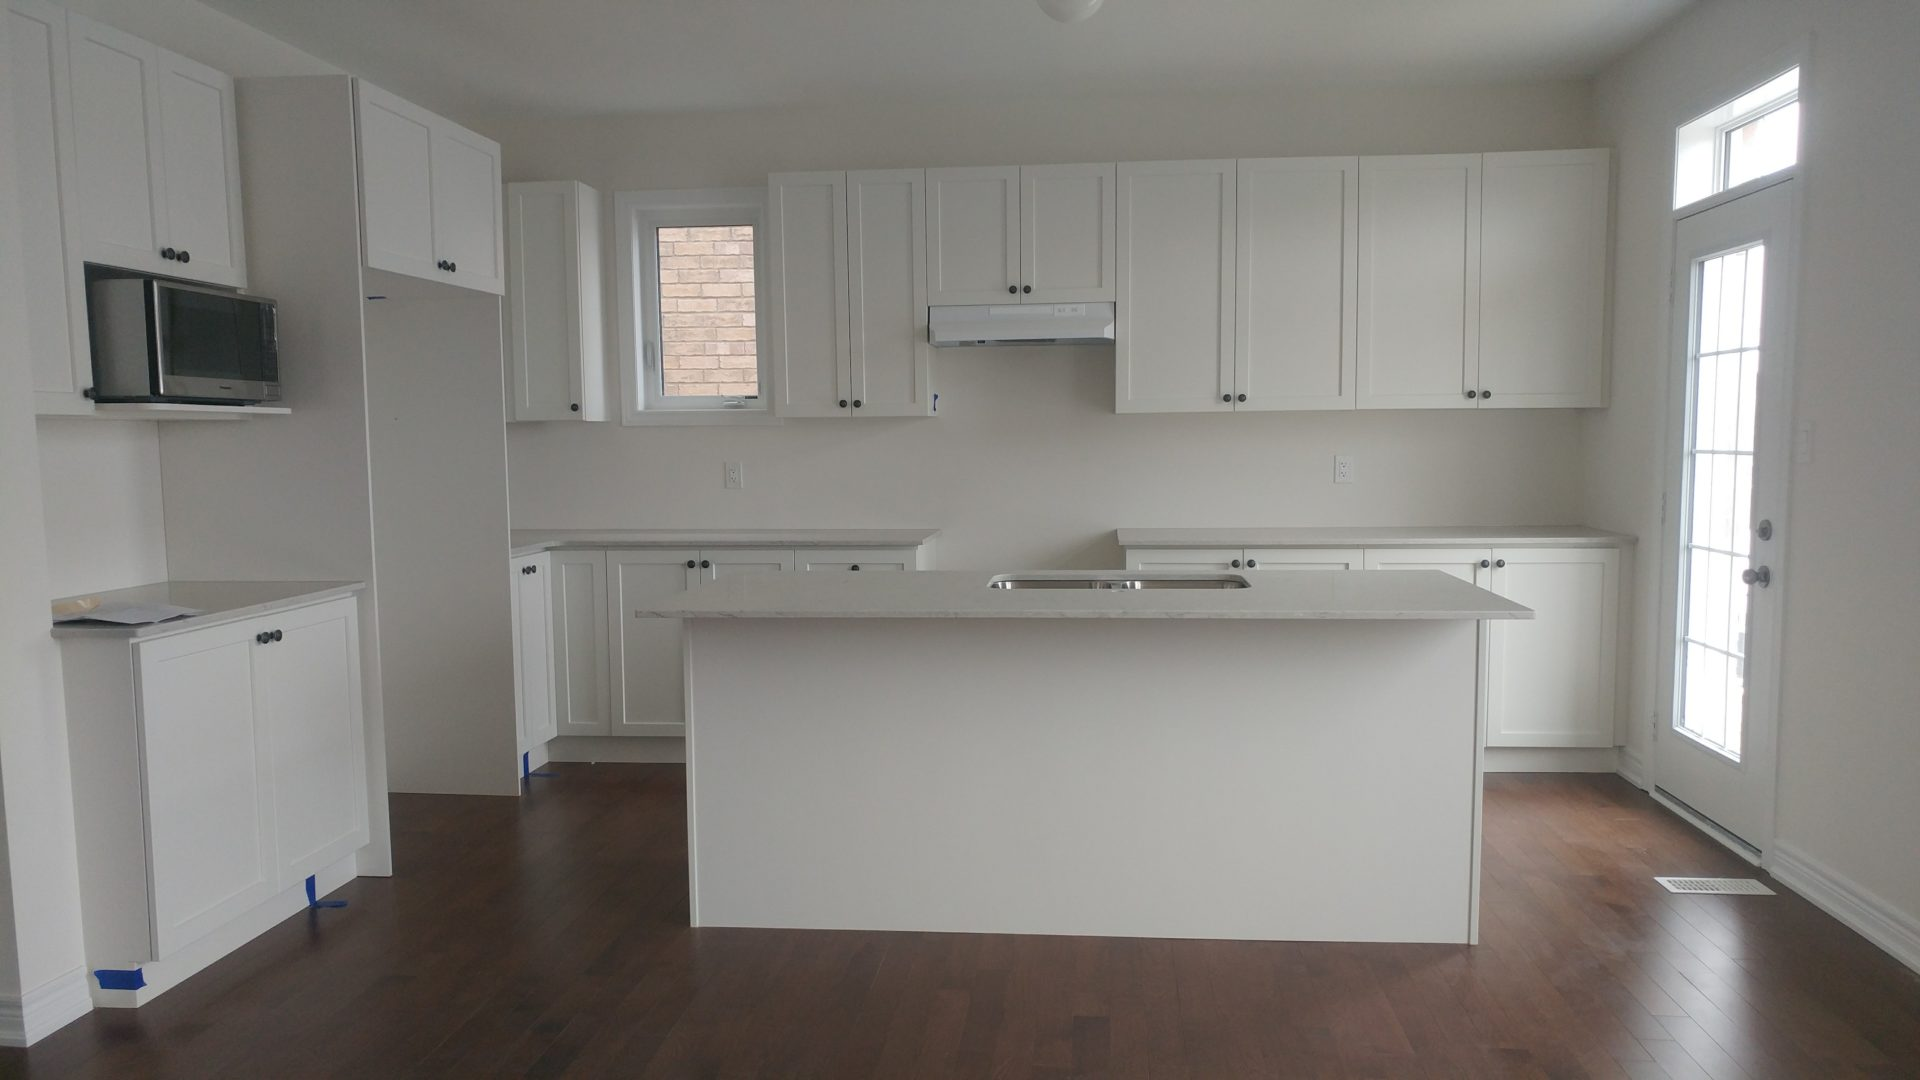 Bland white kitchen BEFORE DIY design